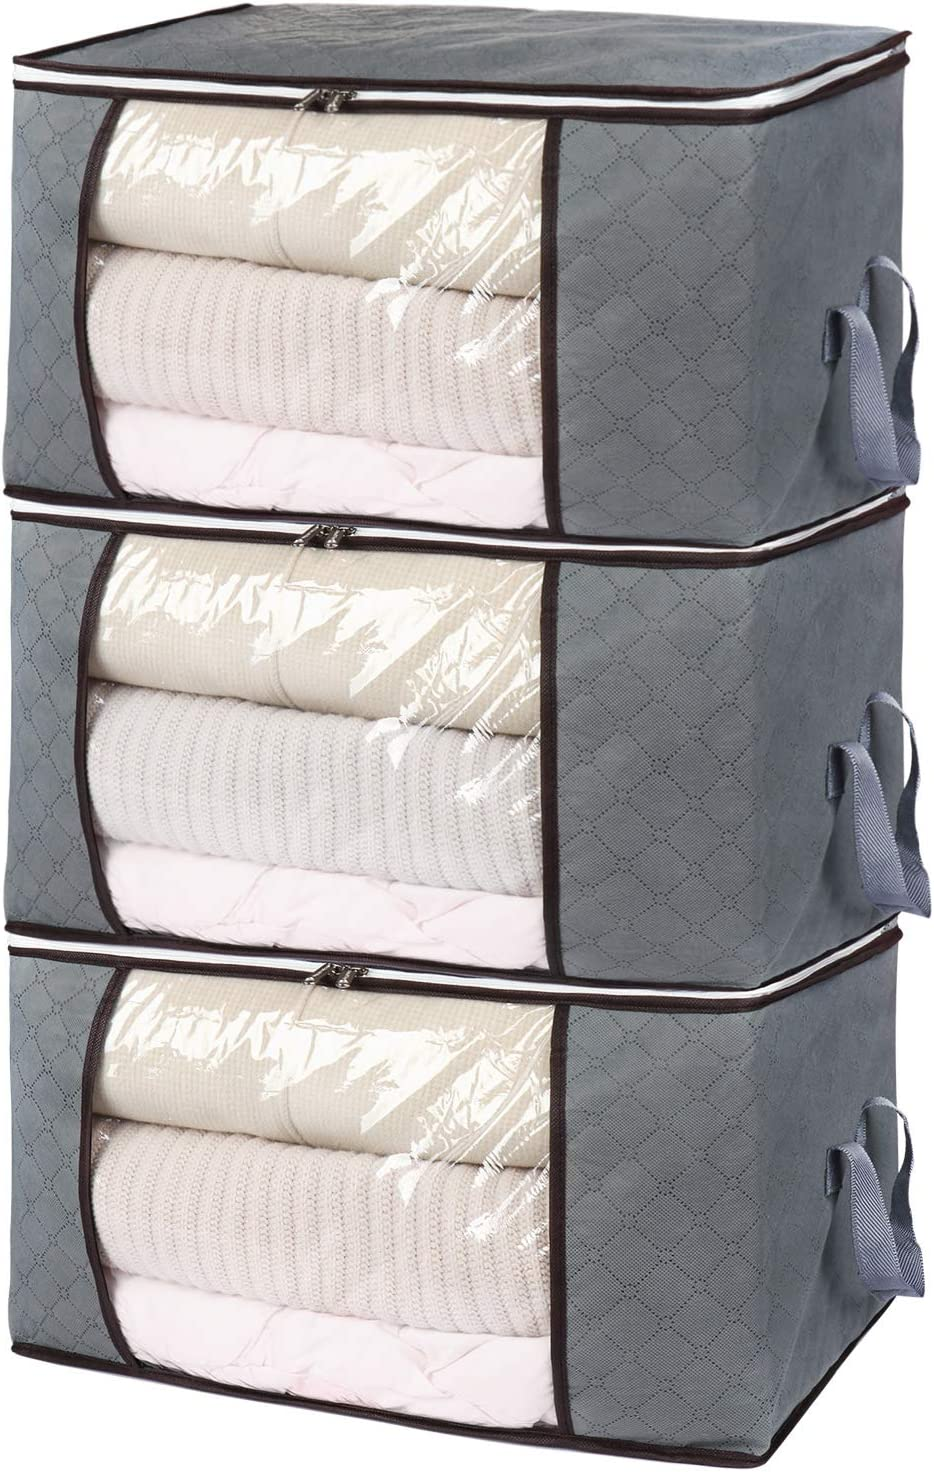 Bedding Thick Breathable Fabric Underbed Storage Bags with Clear Windows Clothes Storage Bags,Duvet Storage Bag King Size Duvets and Blankets Organizer.60 x 35 x 40 cm